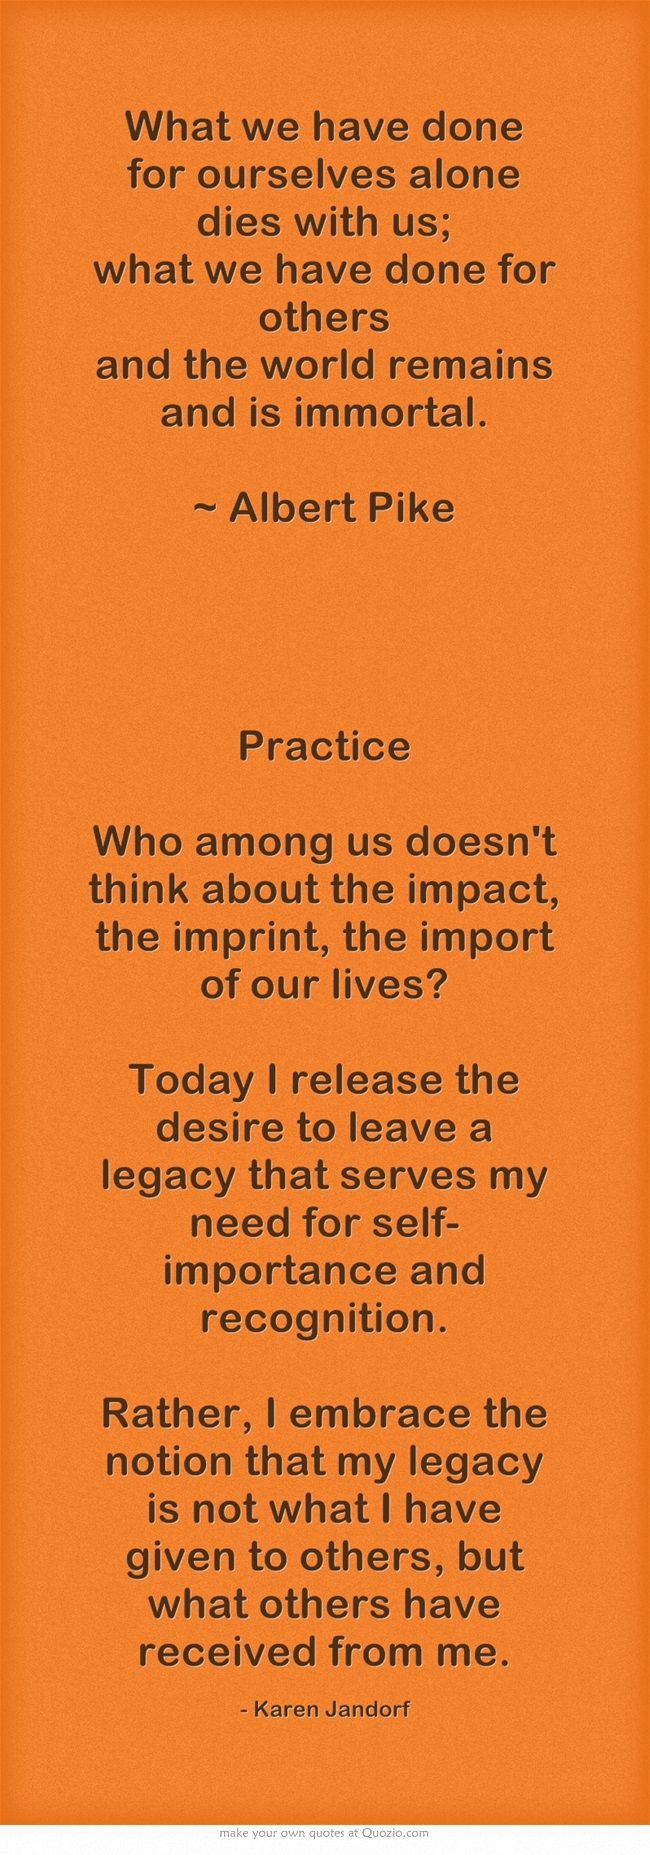 What we have done for ourselves alone dies with us; what we have done for others and the world remains and is immortal. ~ Albert Pike   Practice Who among us doesn't think about the impact, the imprint, the import of our lives? Today I release the desire to leave a legacy that serves my need for self-importance and recognition. Rather, I embrace the notion that my legacy is not what I have given to others, but what others have received from me.